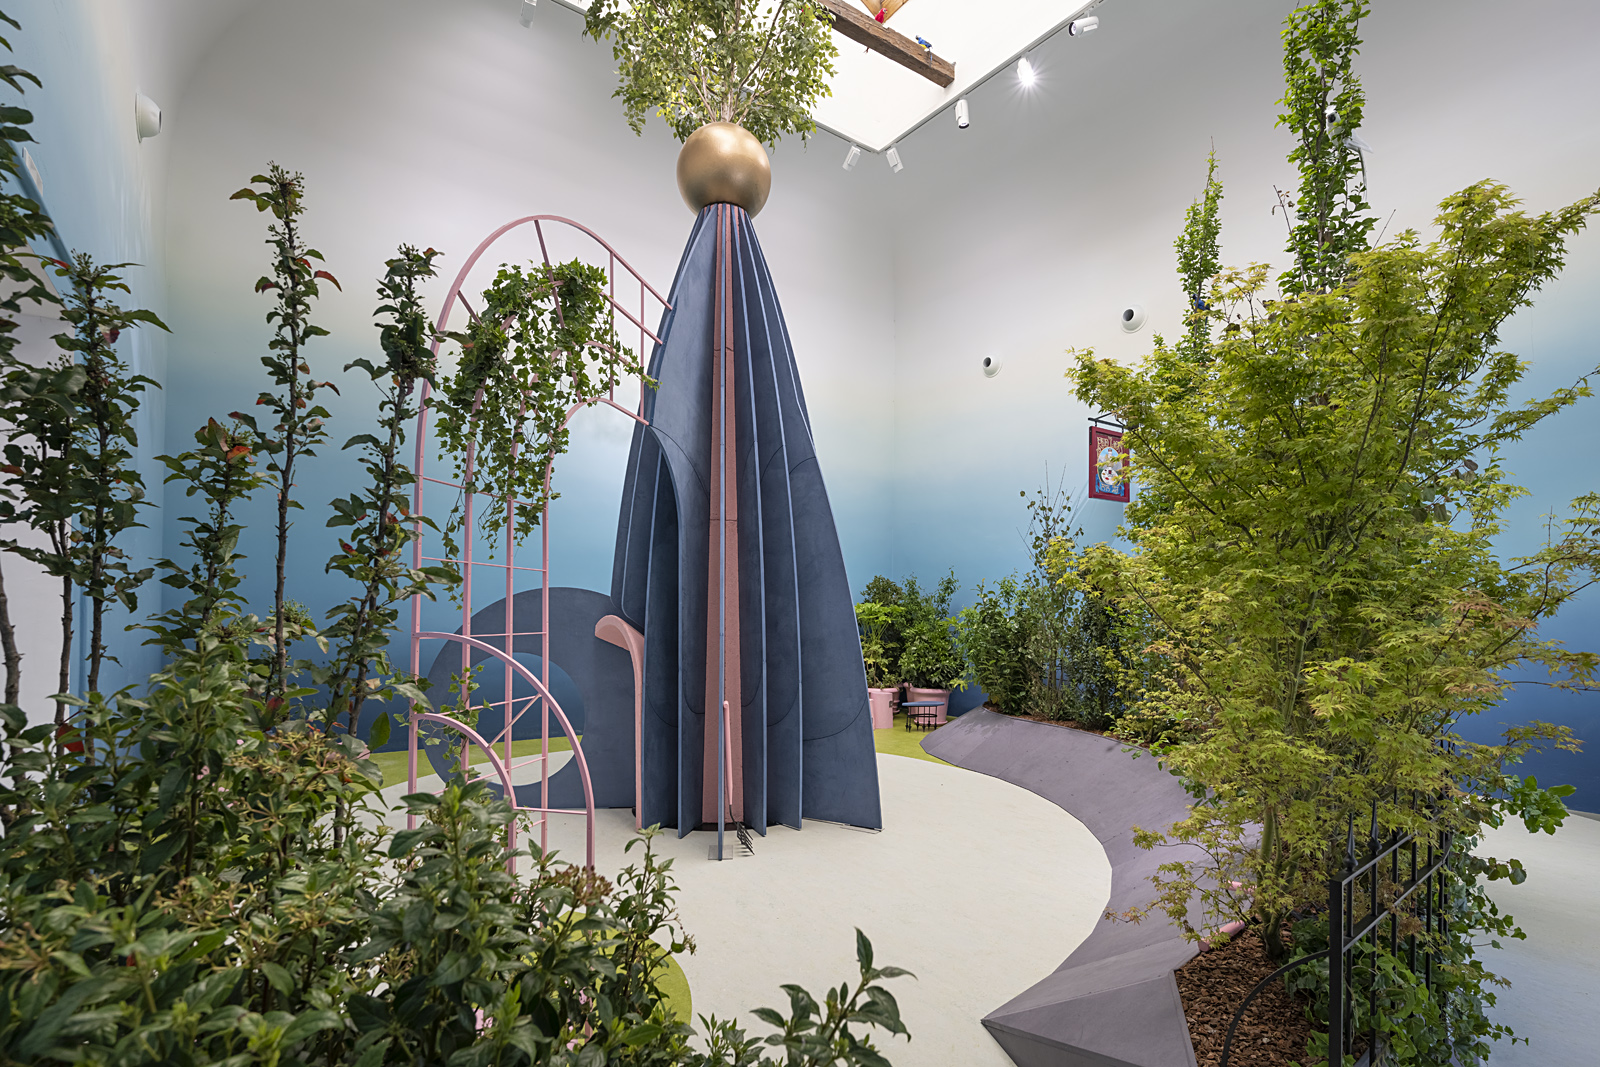 Explore The Garden of Privatised Delights